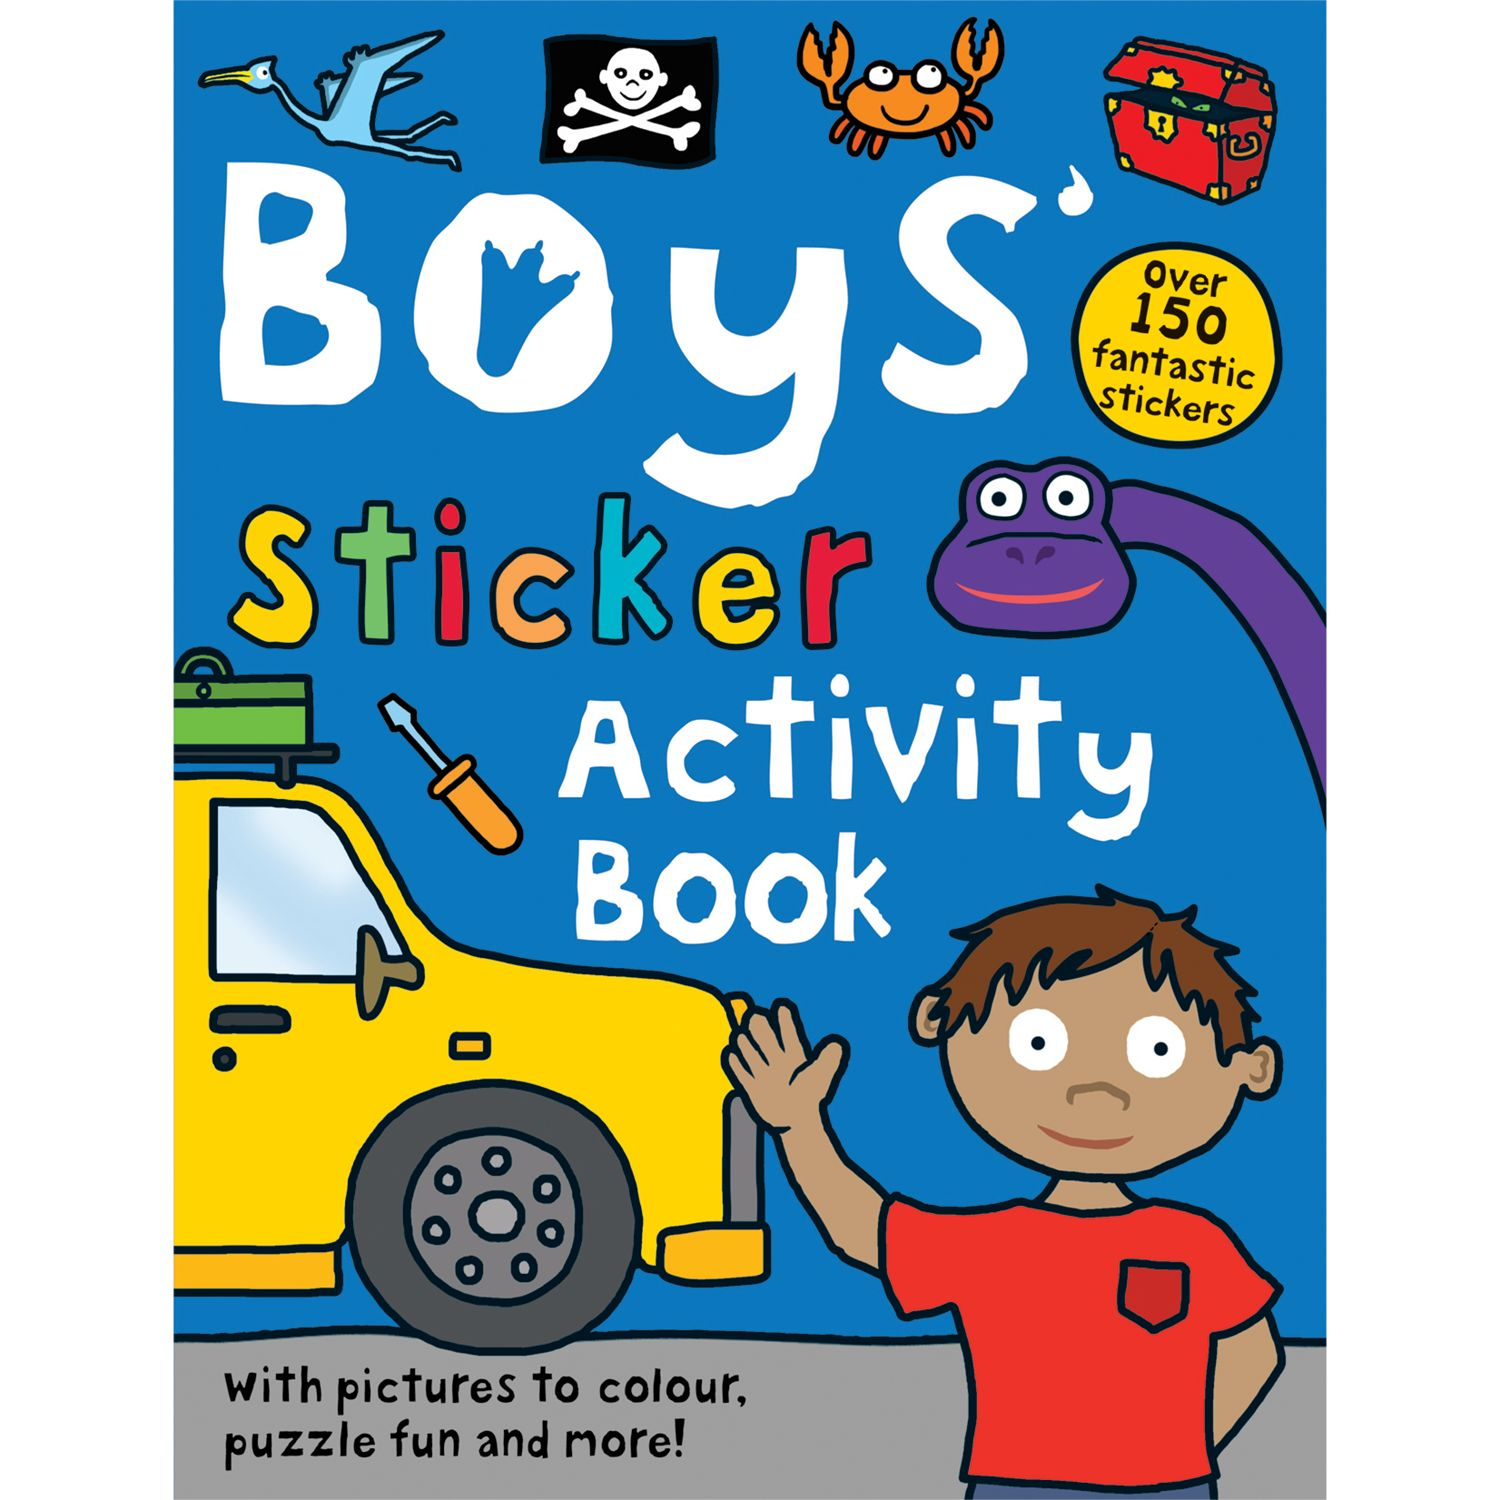 Boys' Sticker Activity Book